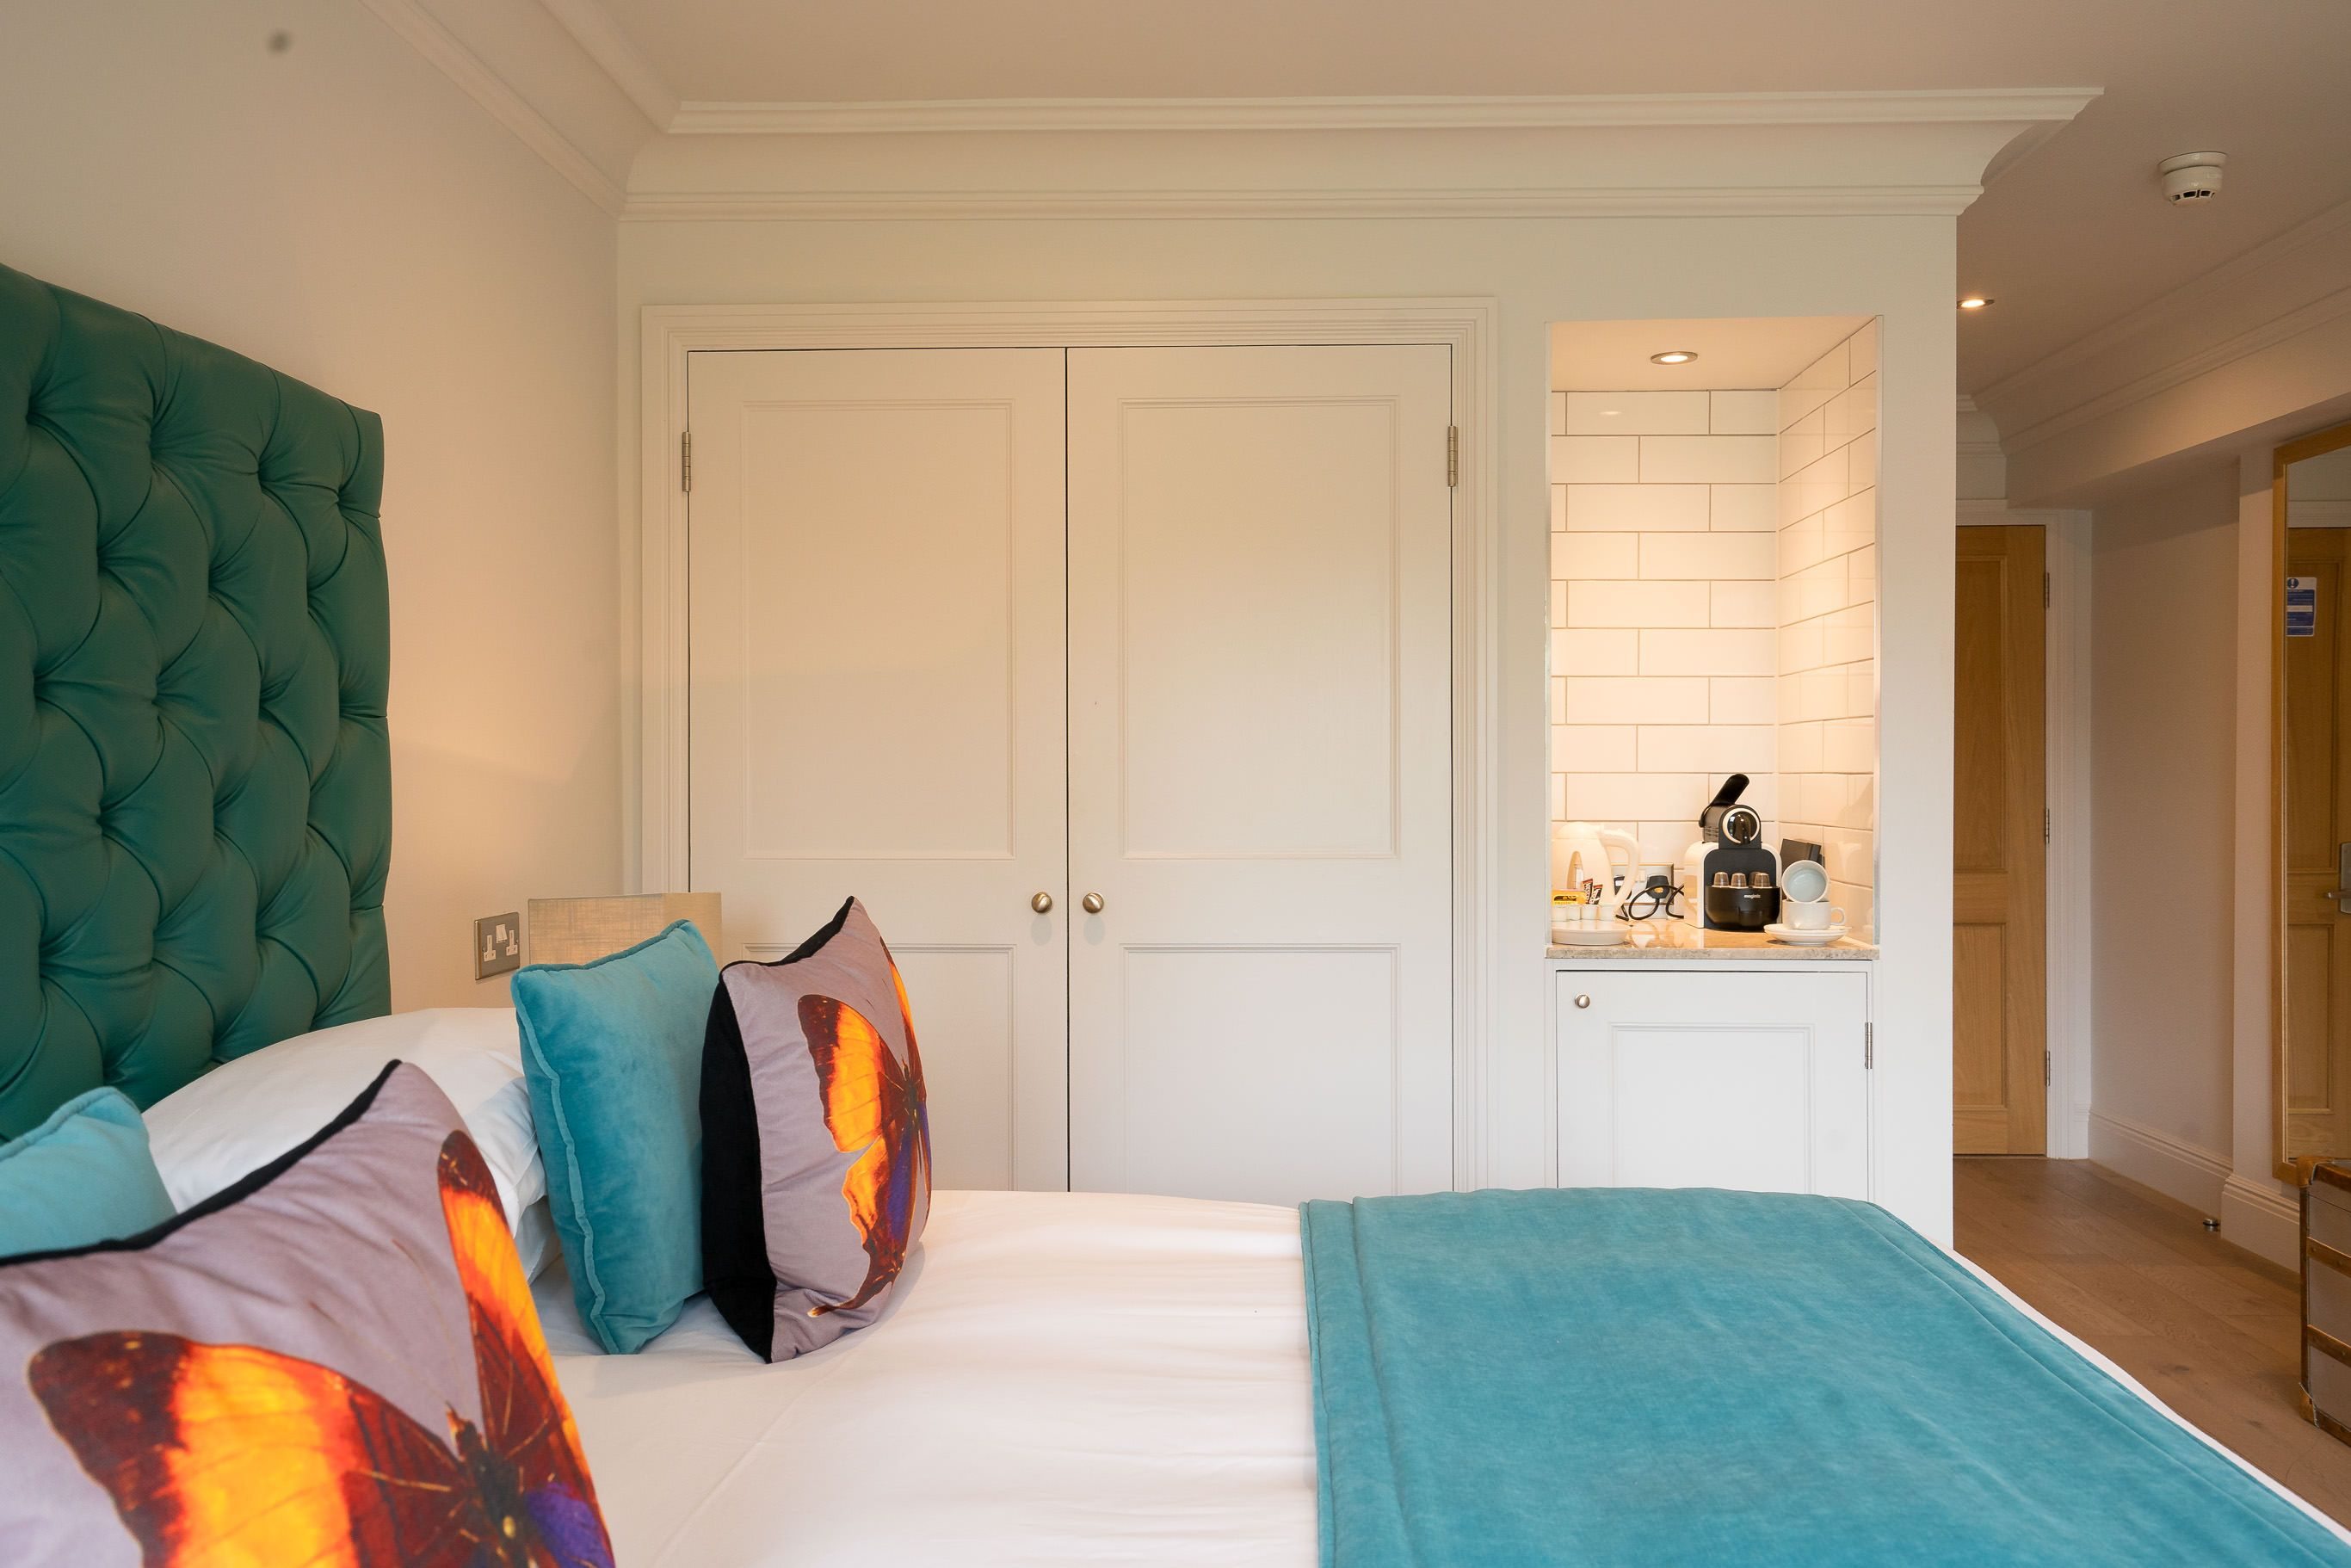 The swan streatley hotel design interior architecture also rh co pinterest